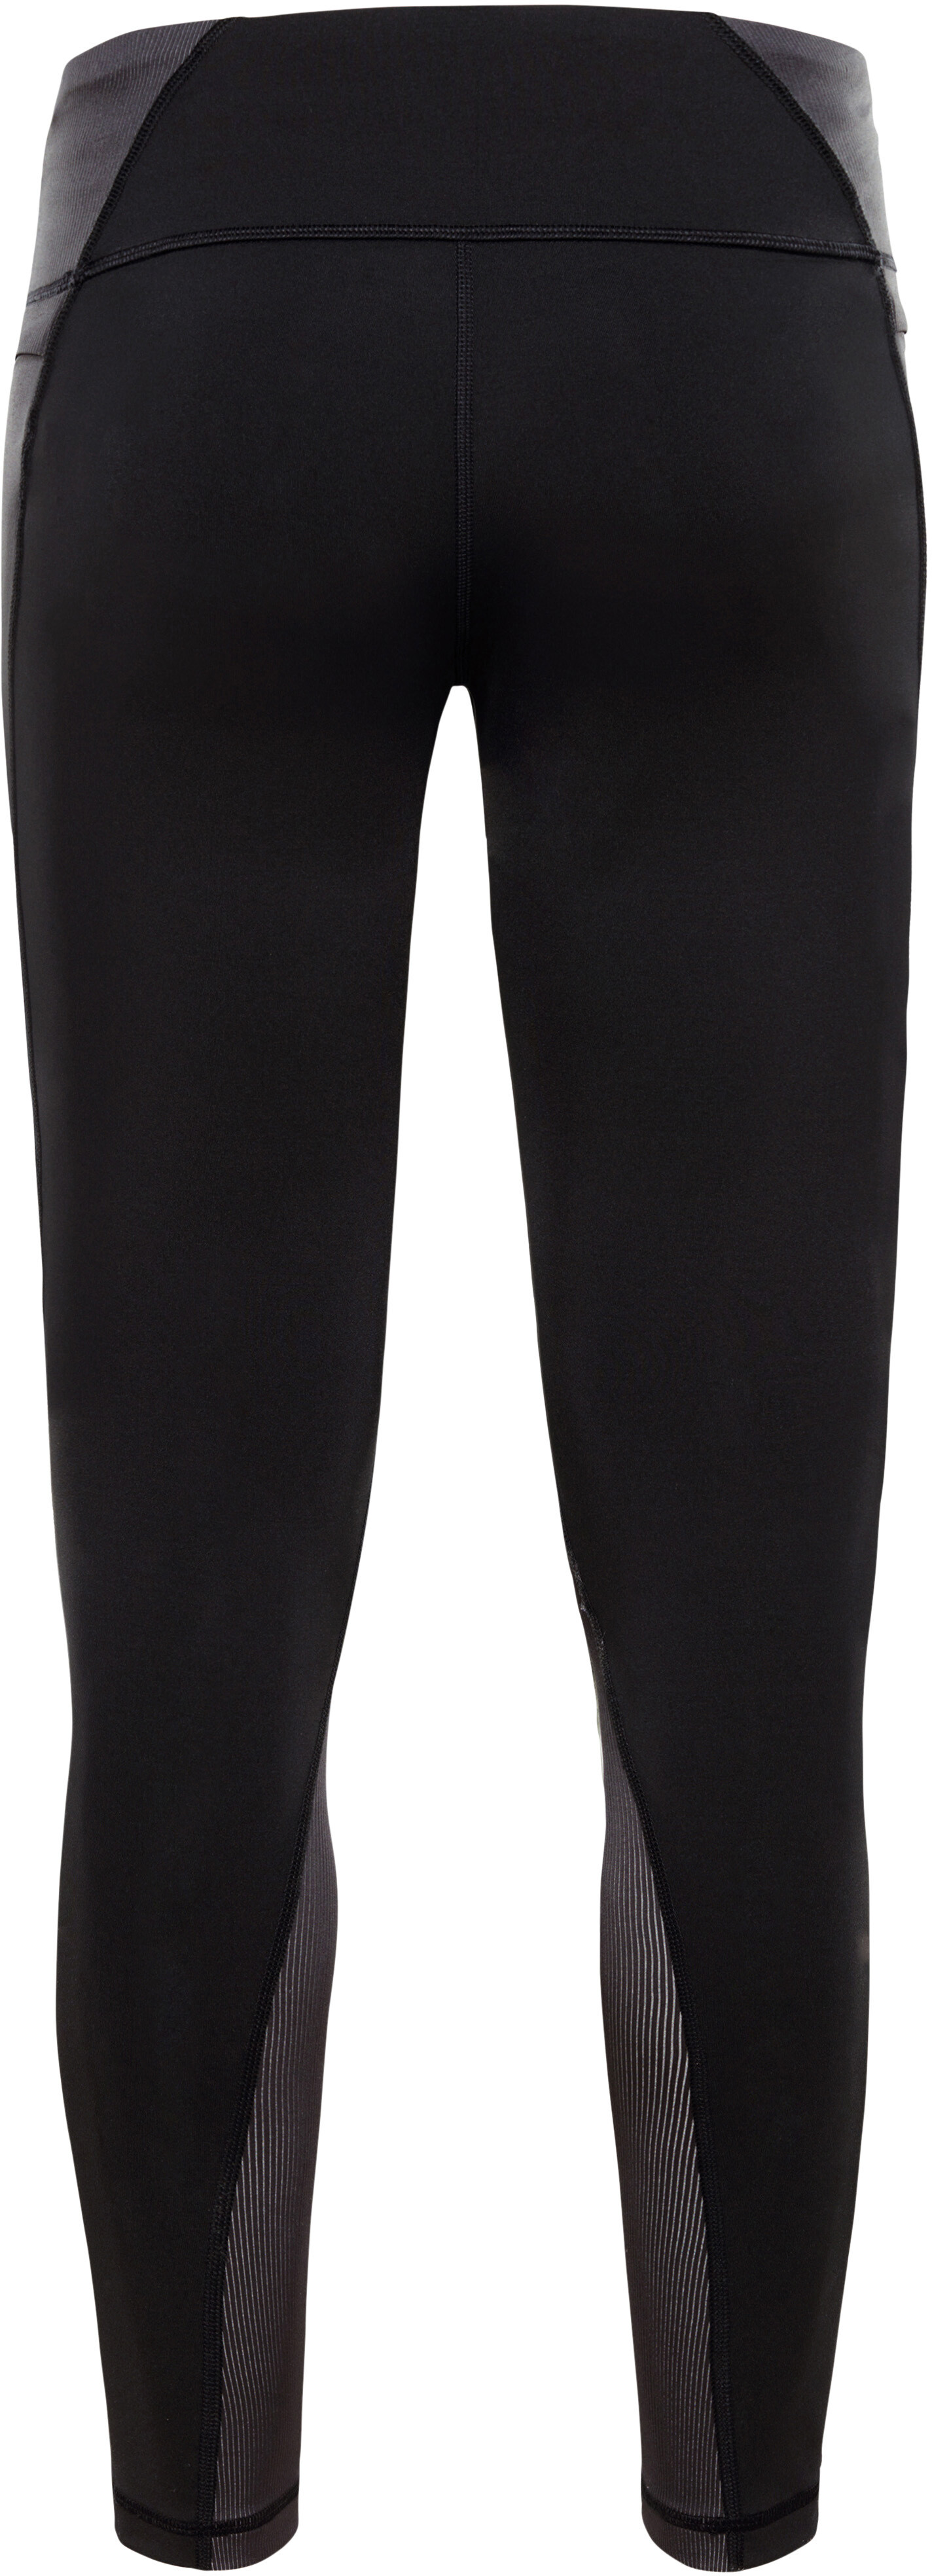 0d9ec1e5d05c4 The North Face Ambition Mid Rise Tights Women tnf black at Bikester ...